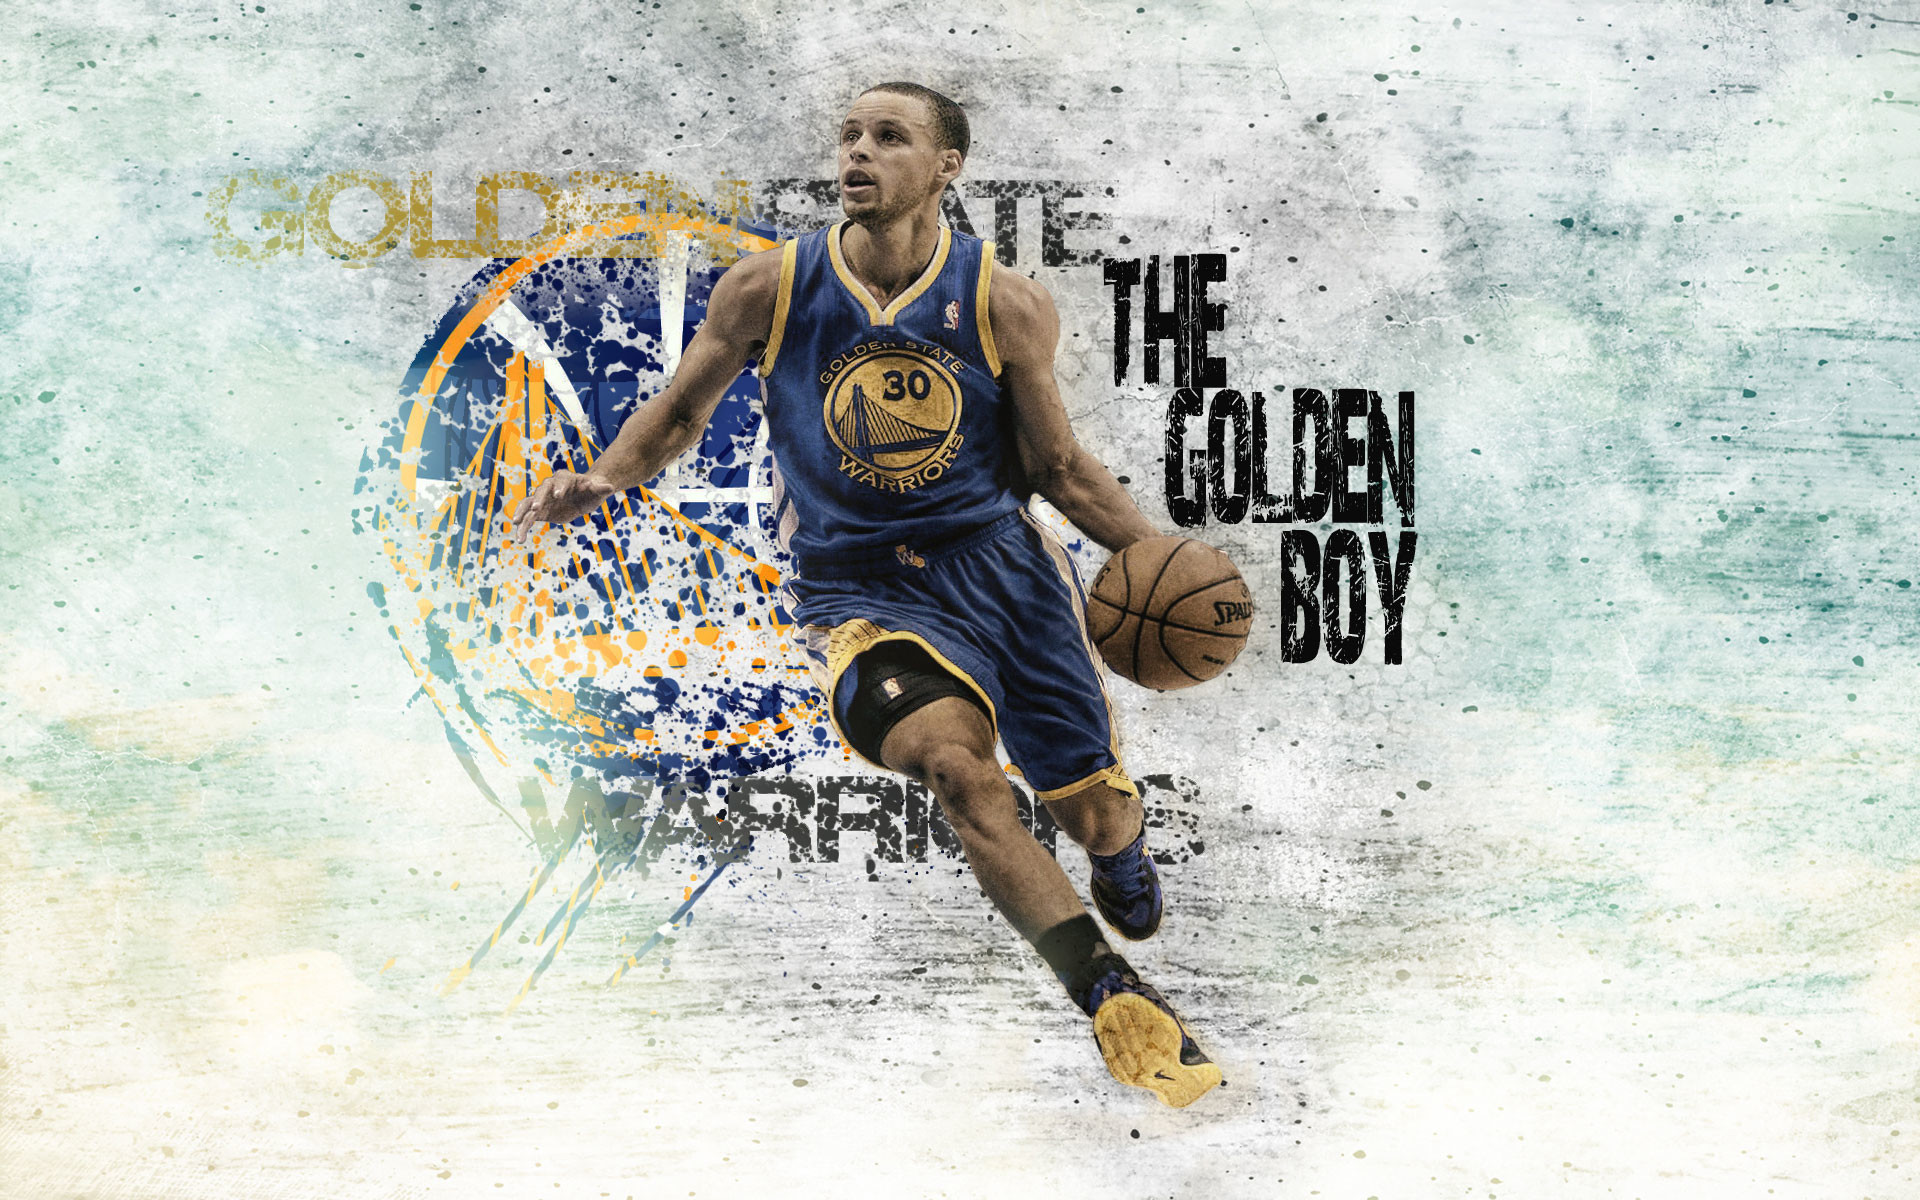 1920x1200 fractal stephen curry splash hd wallpaper for desktop background .